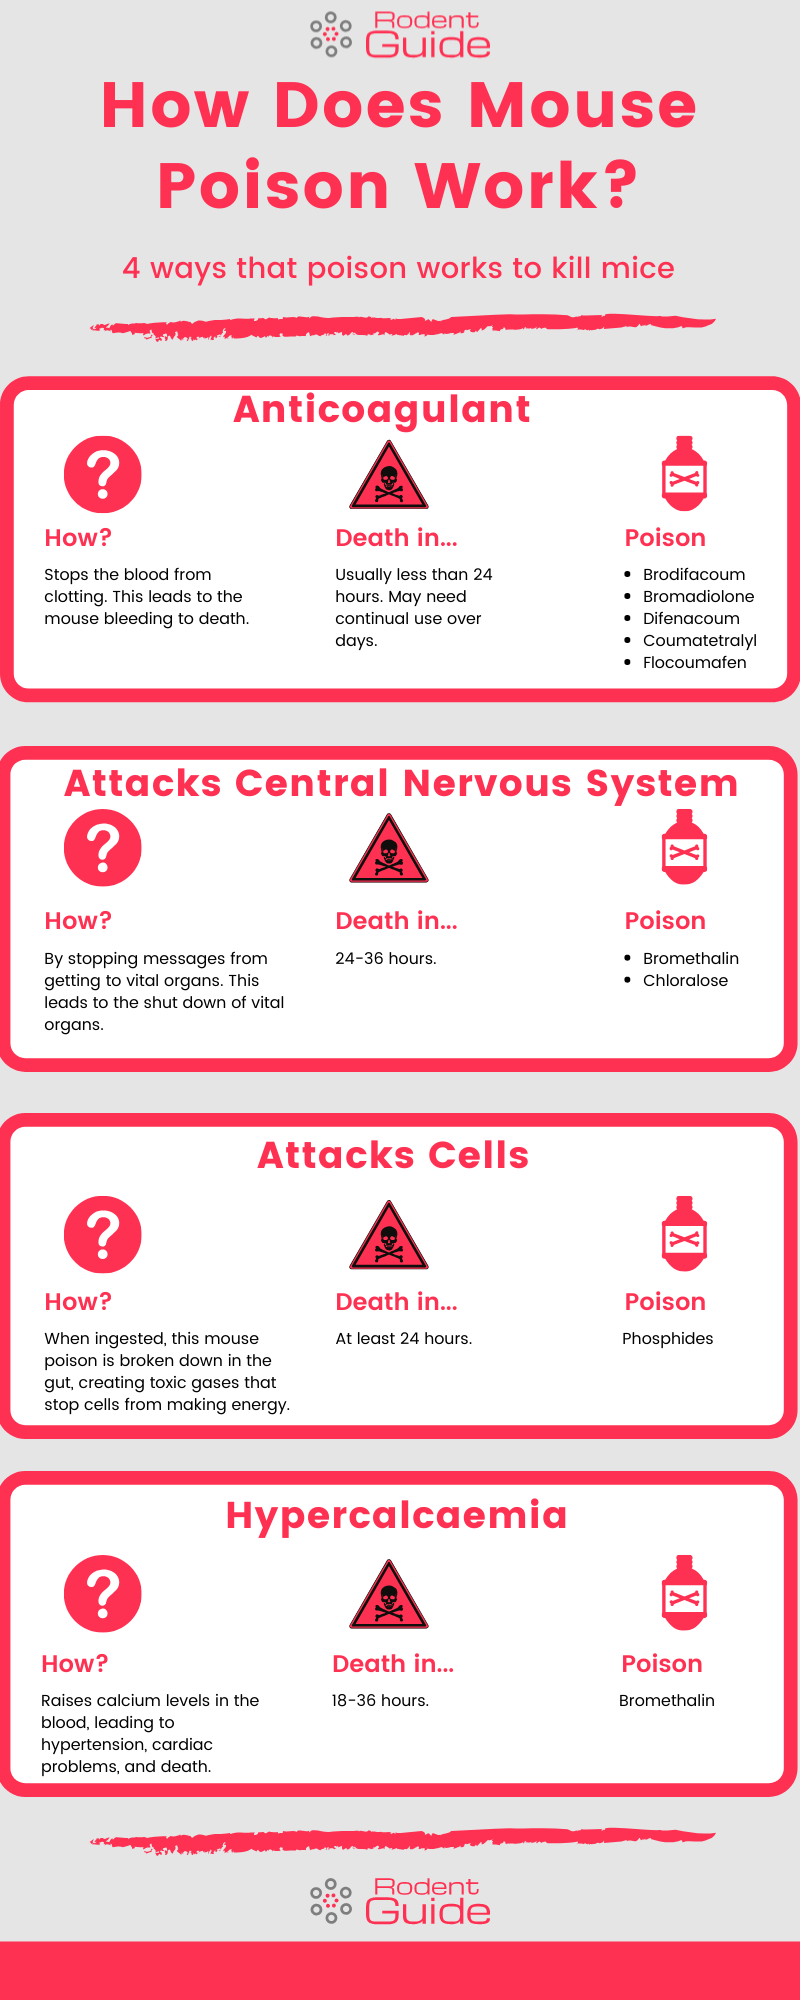 How Does Mouse Poison Work Infographic